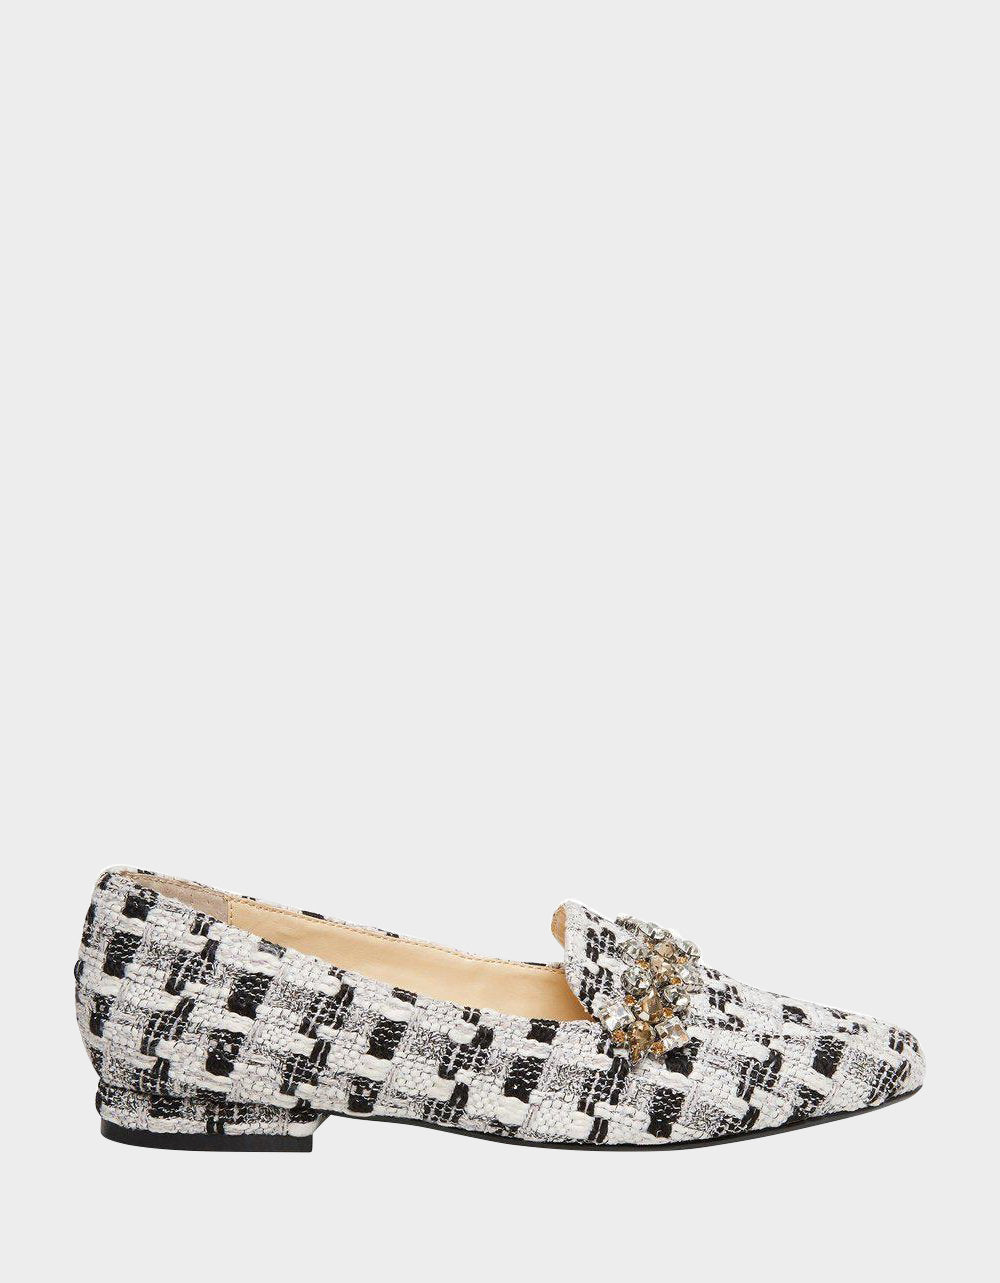 SB-FARIN NATL TWEED - SHOES - Betsey Johnson